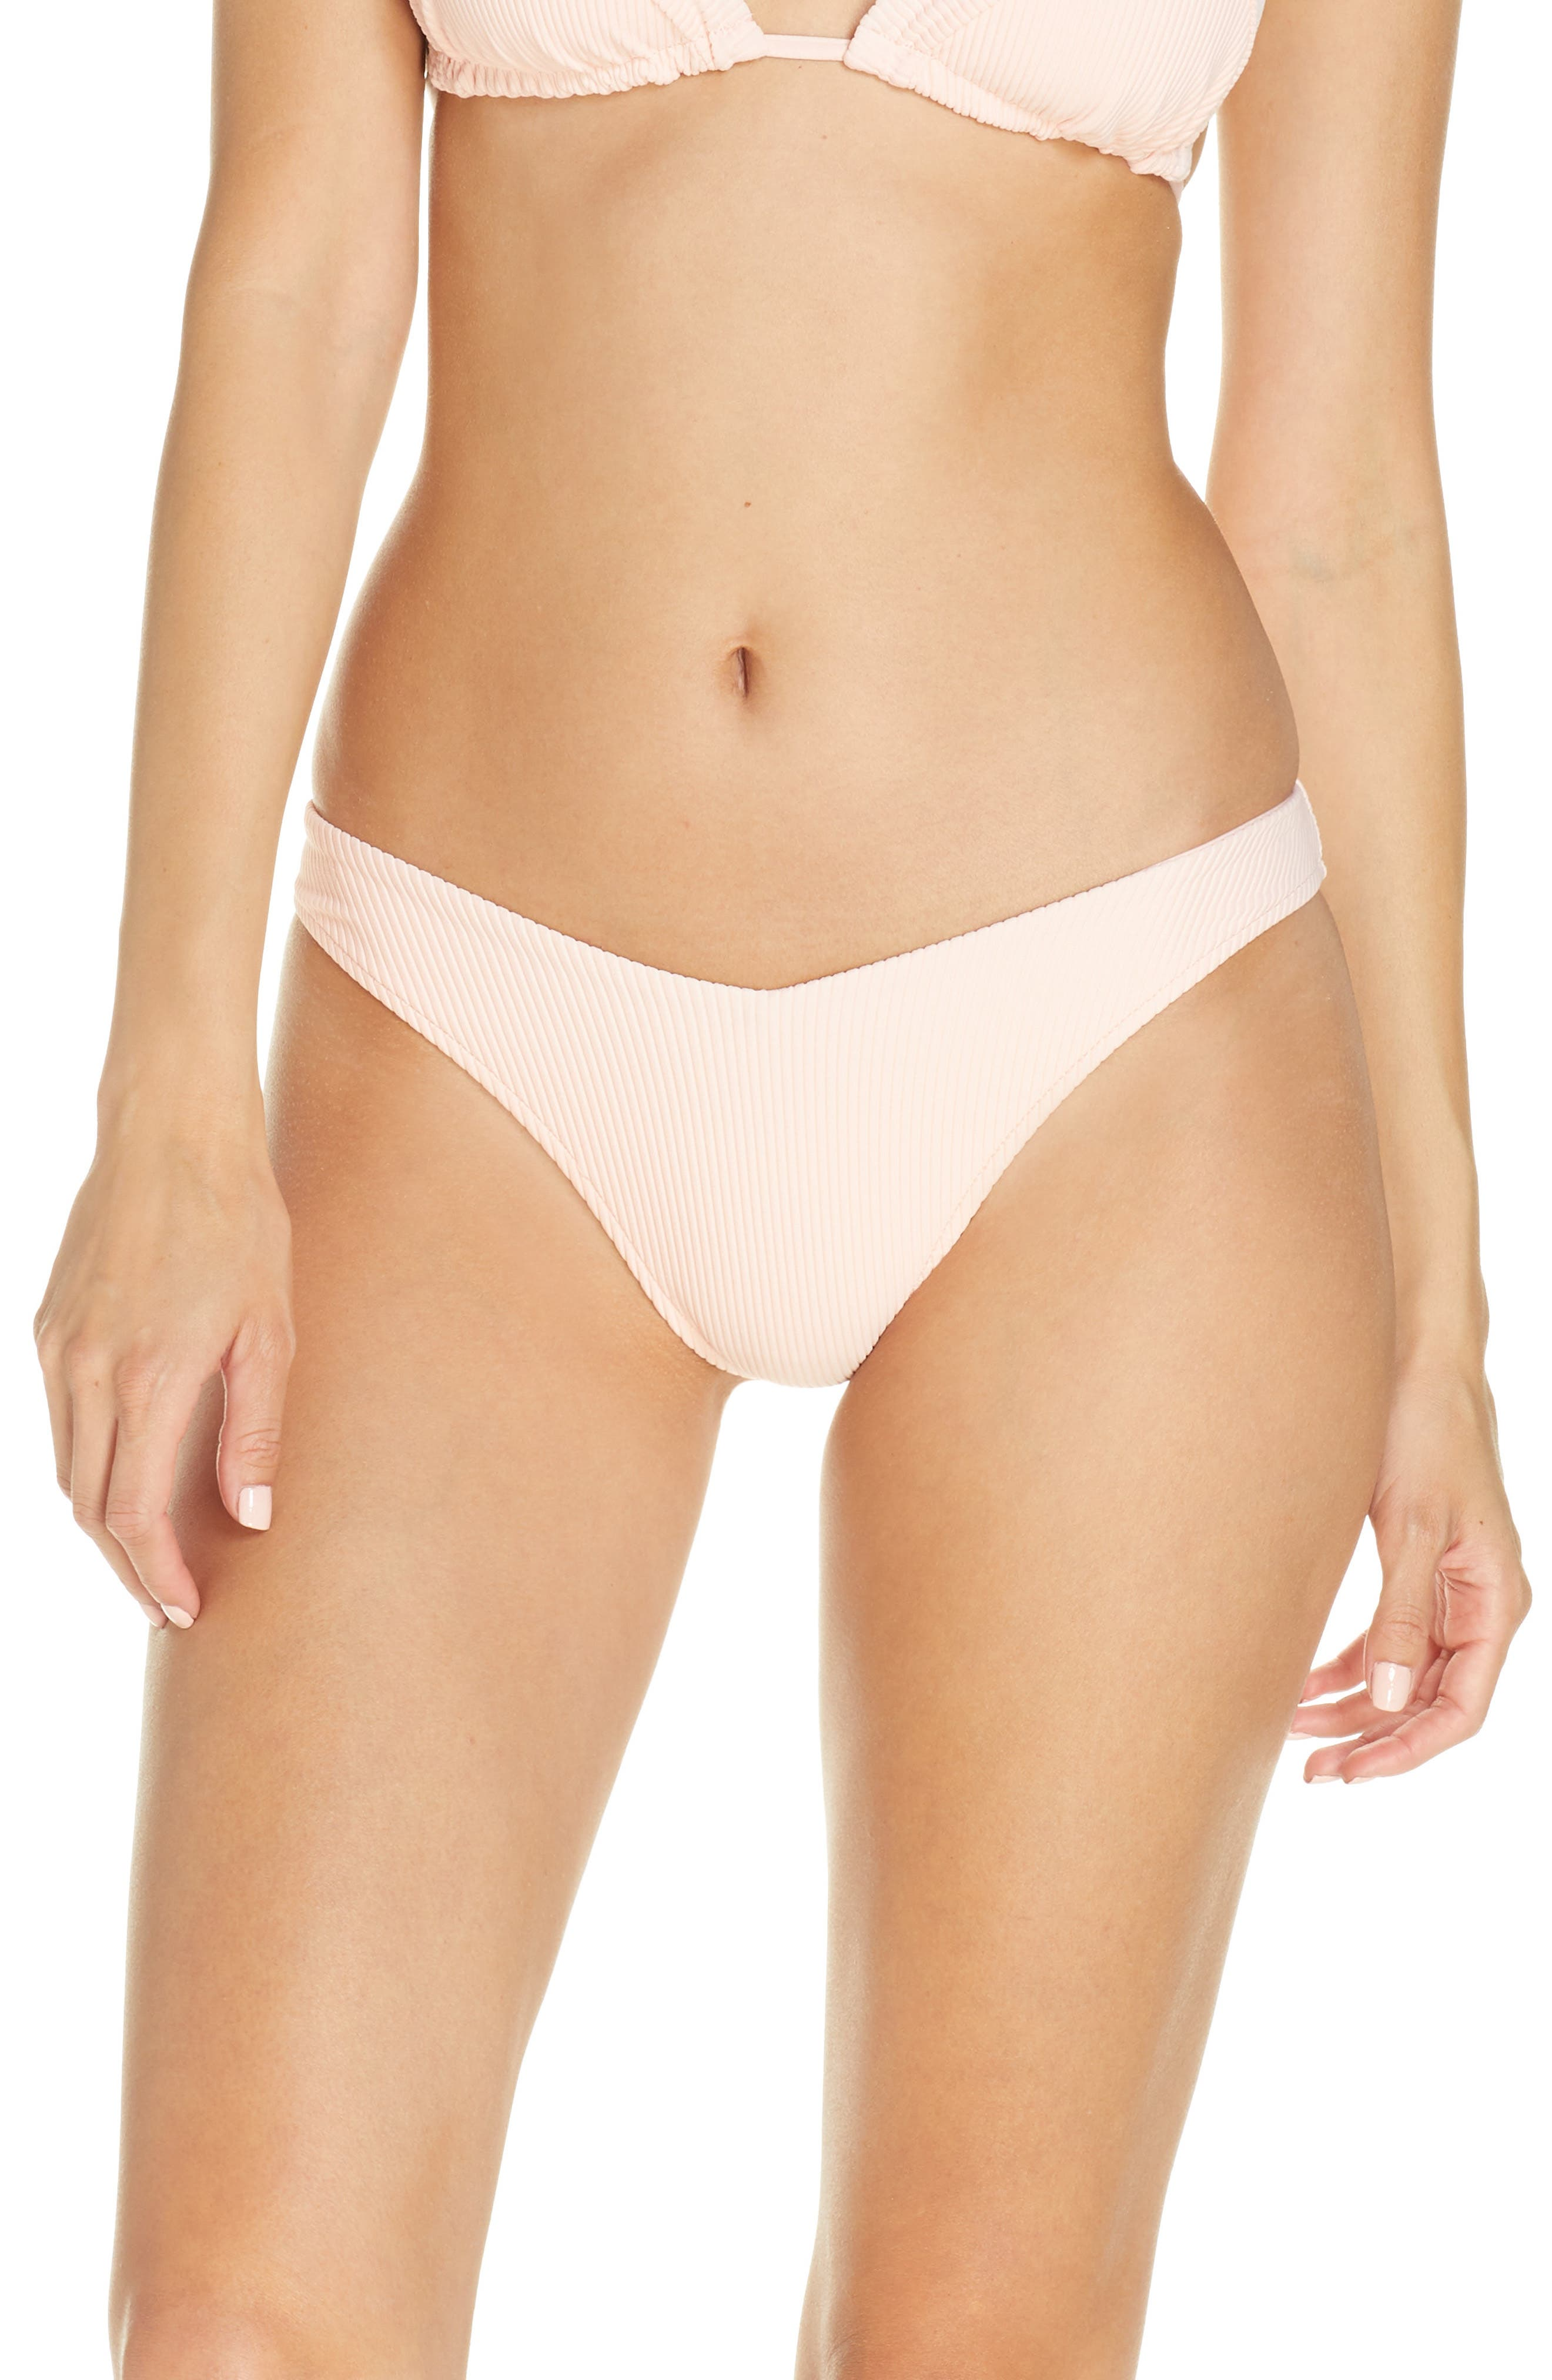 An alluring V-shape and high-cut legs put this ribbed bikini bottom in a league of her own. Style Name: Frankies Bikinis Enzo Bikini Bottoms. Style Number: 5967139. Available in stores.